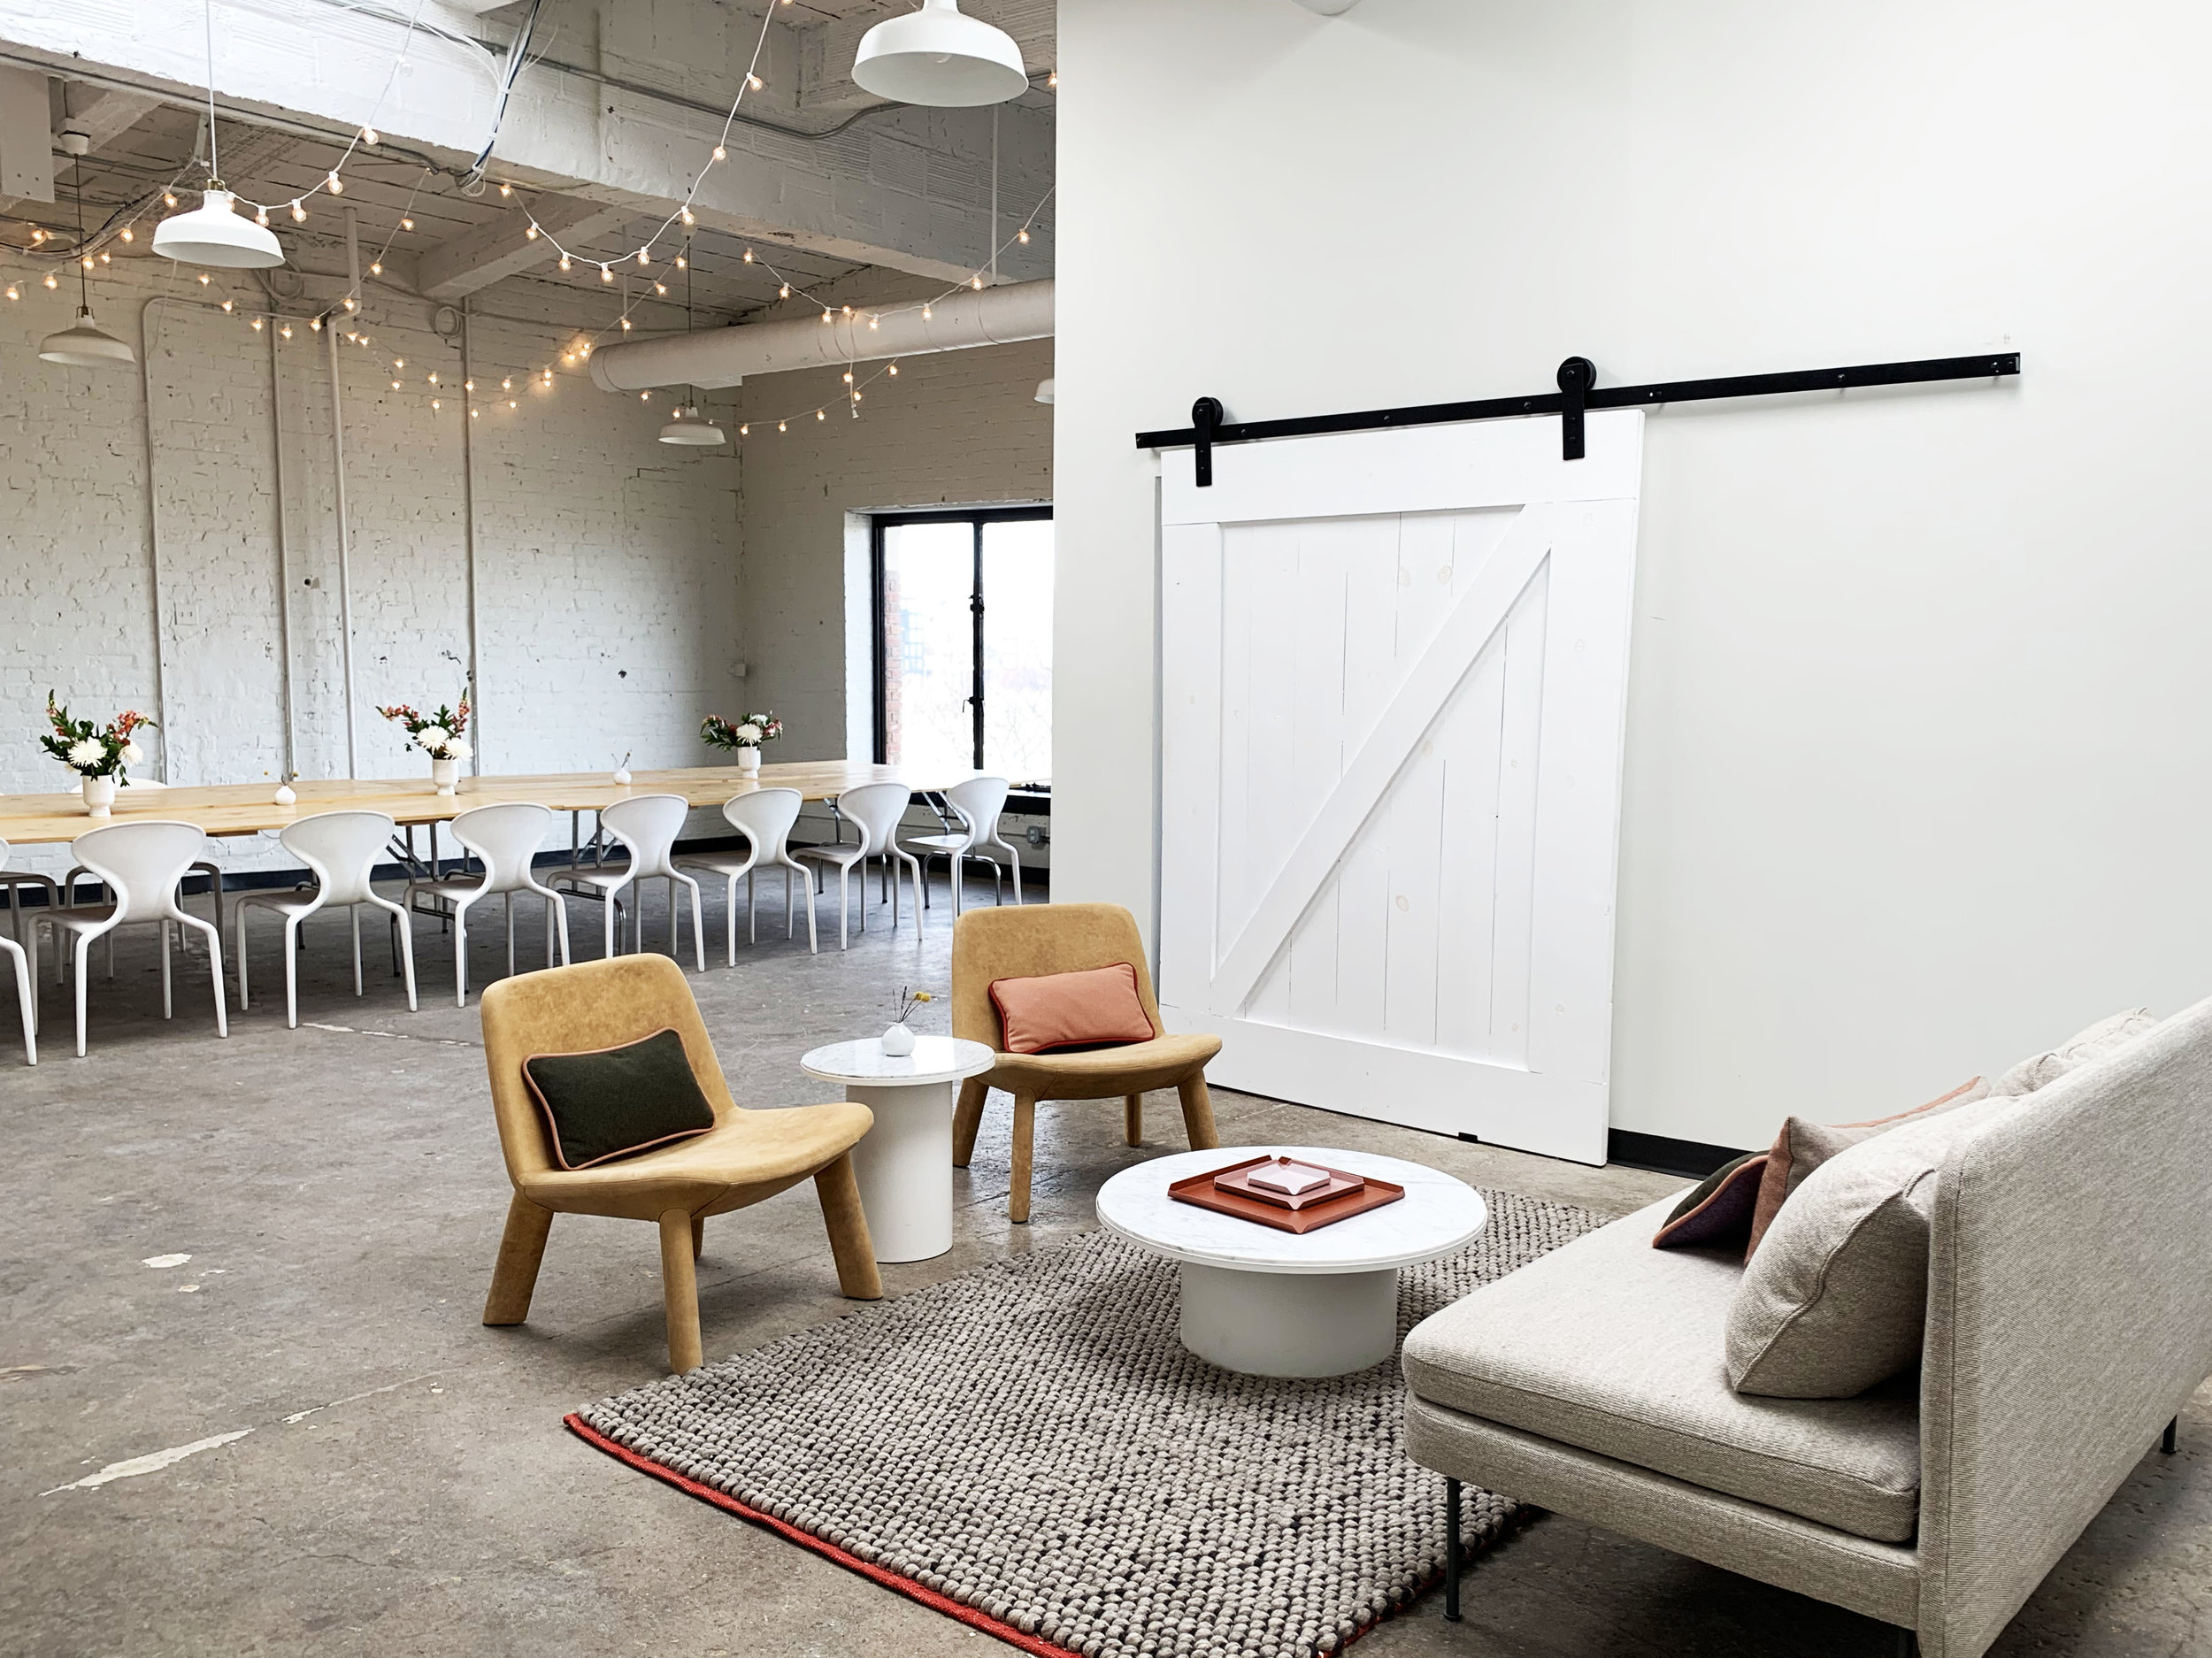 Space Rentals — LAB MPLS